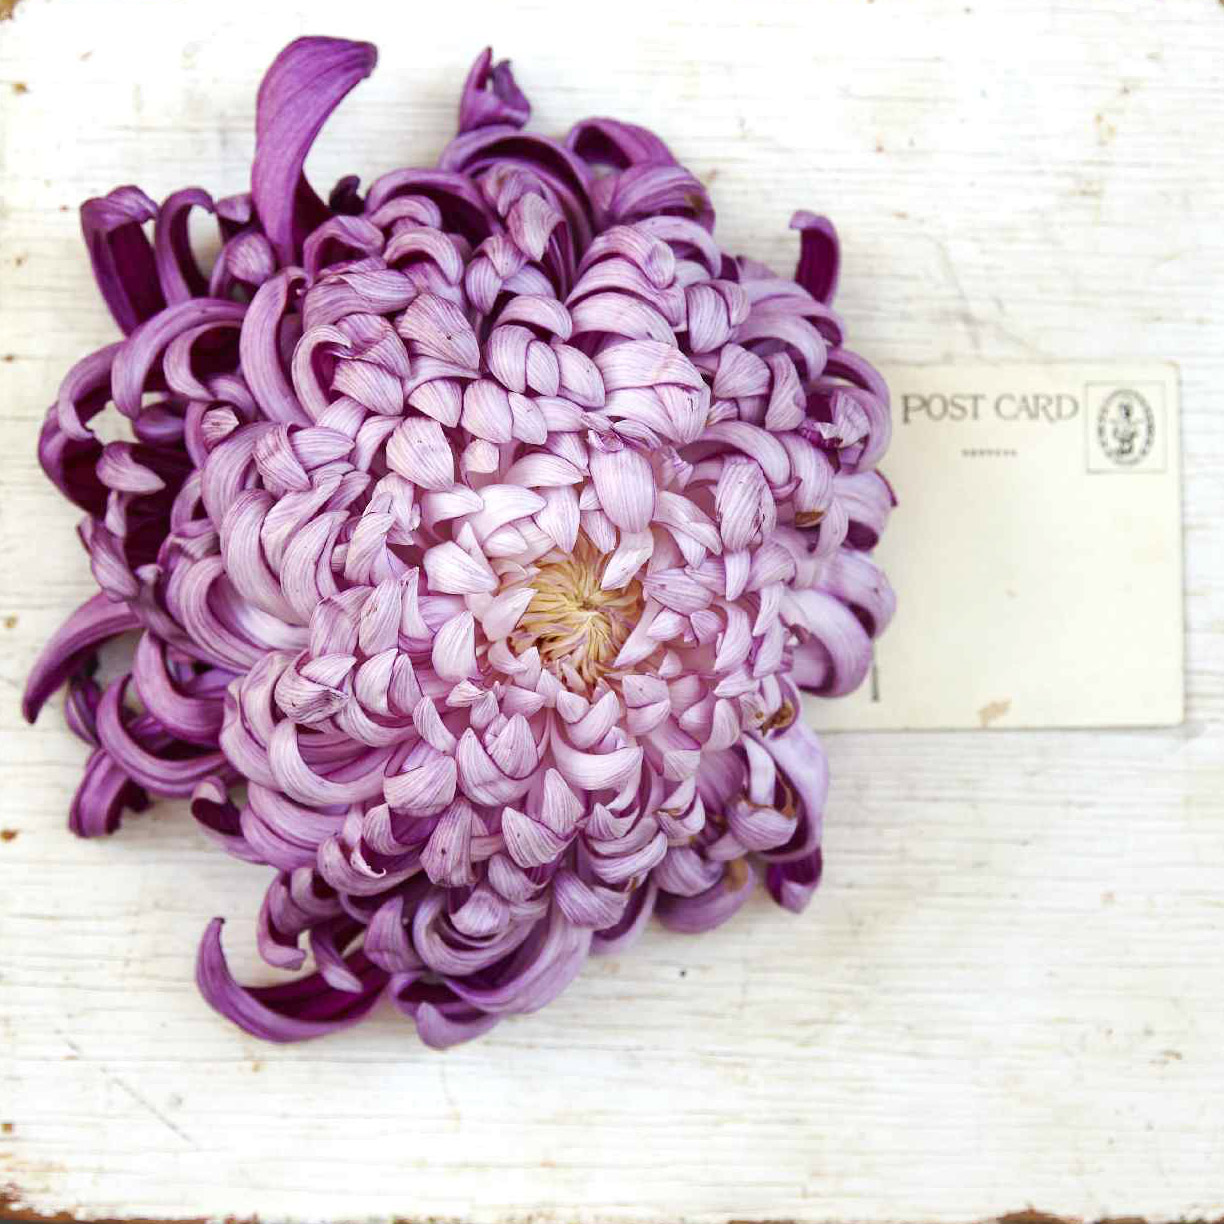 shades of purple Chrysanthemum 'King's Ransom' mum bloom next to postcard to show size of flower